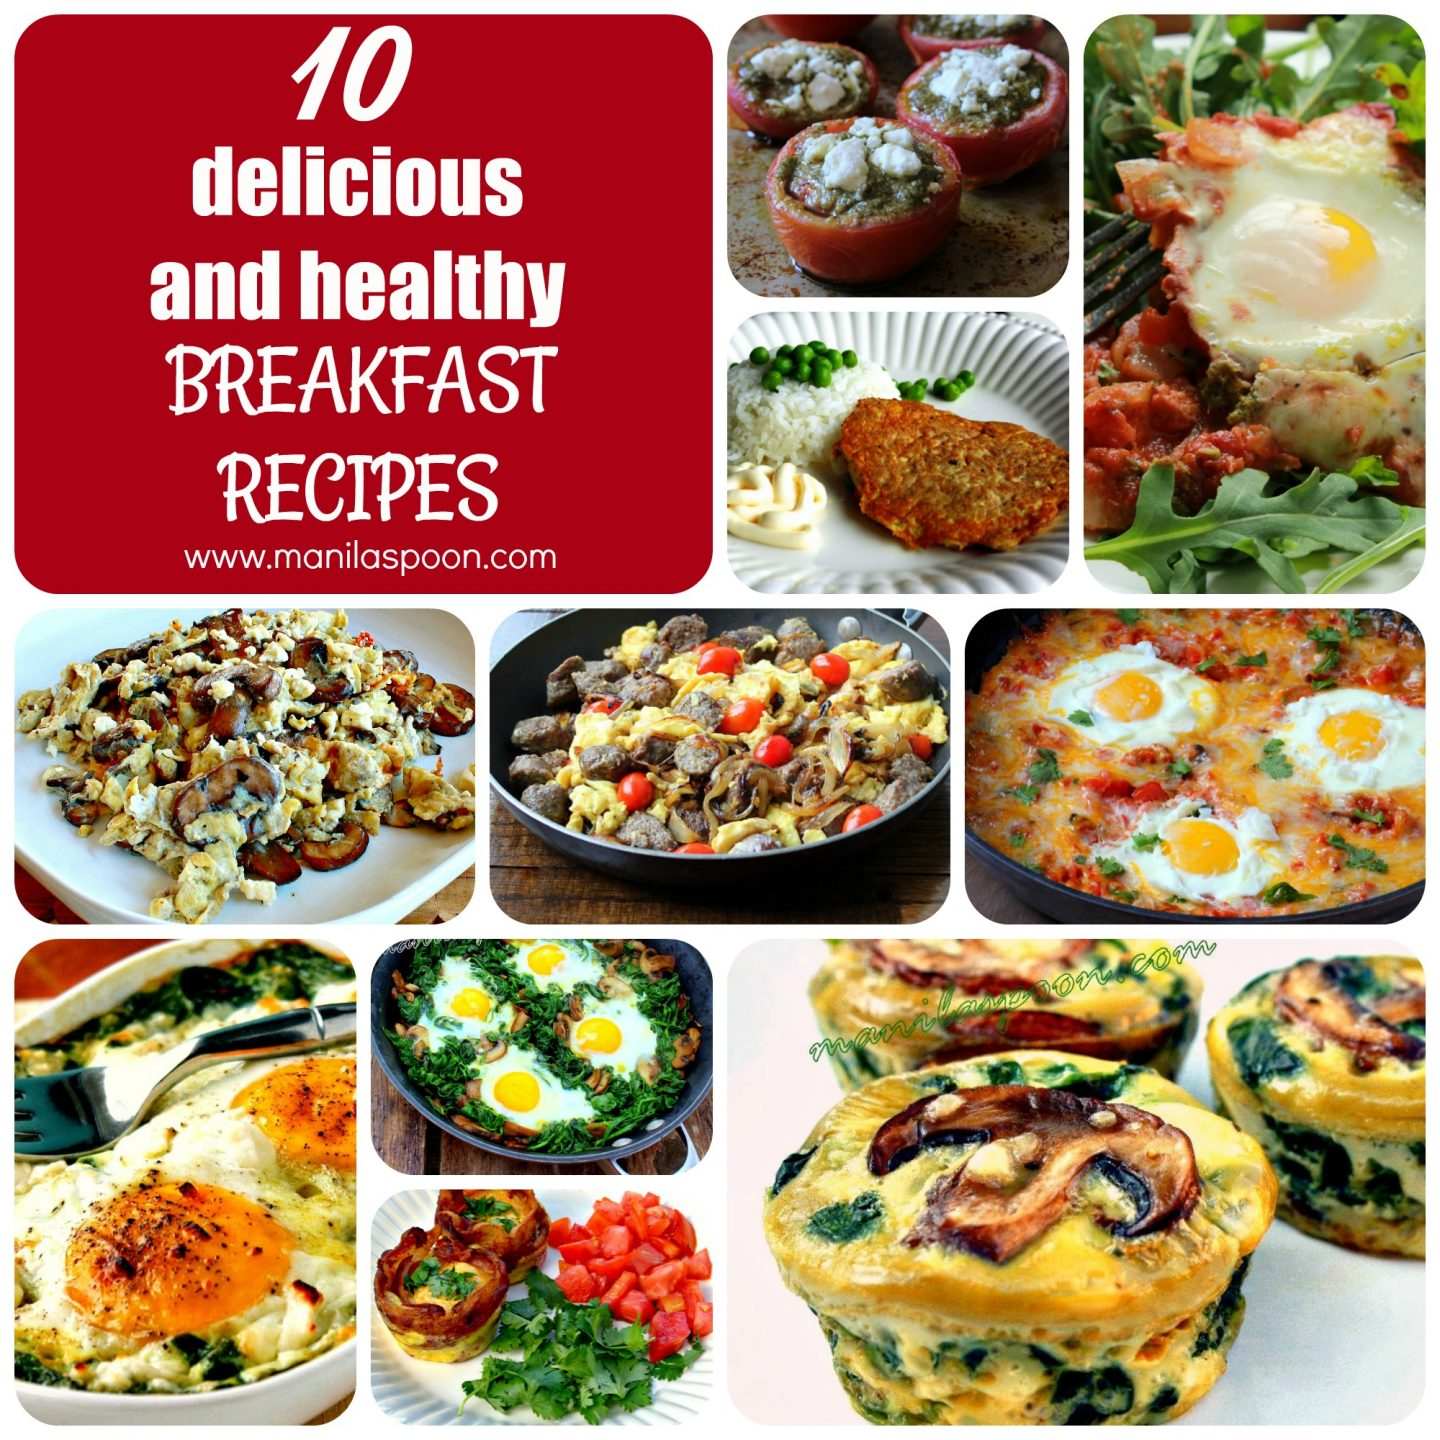 10 Delicious & Healthy Breakfast Recipes